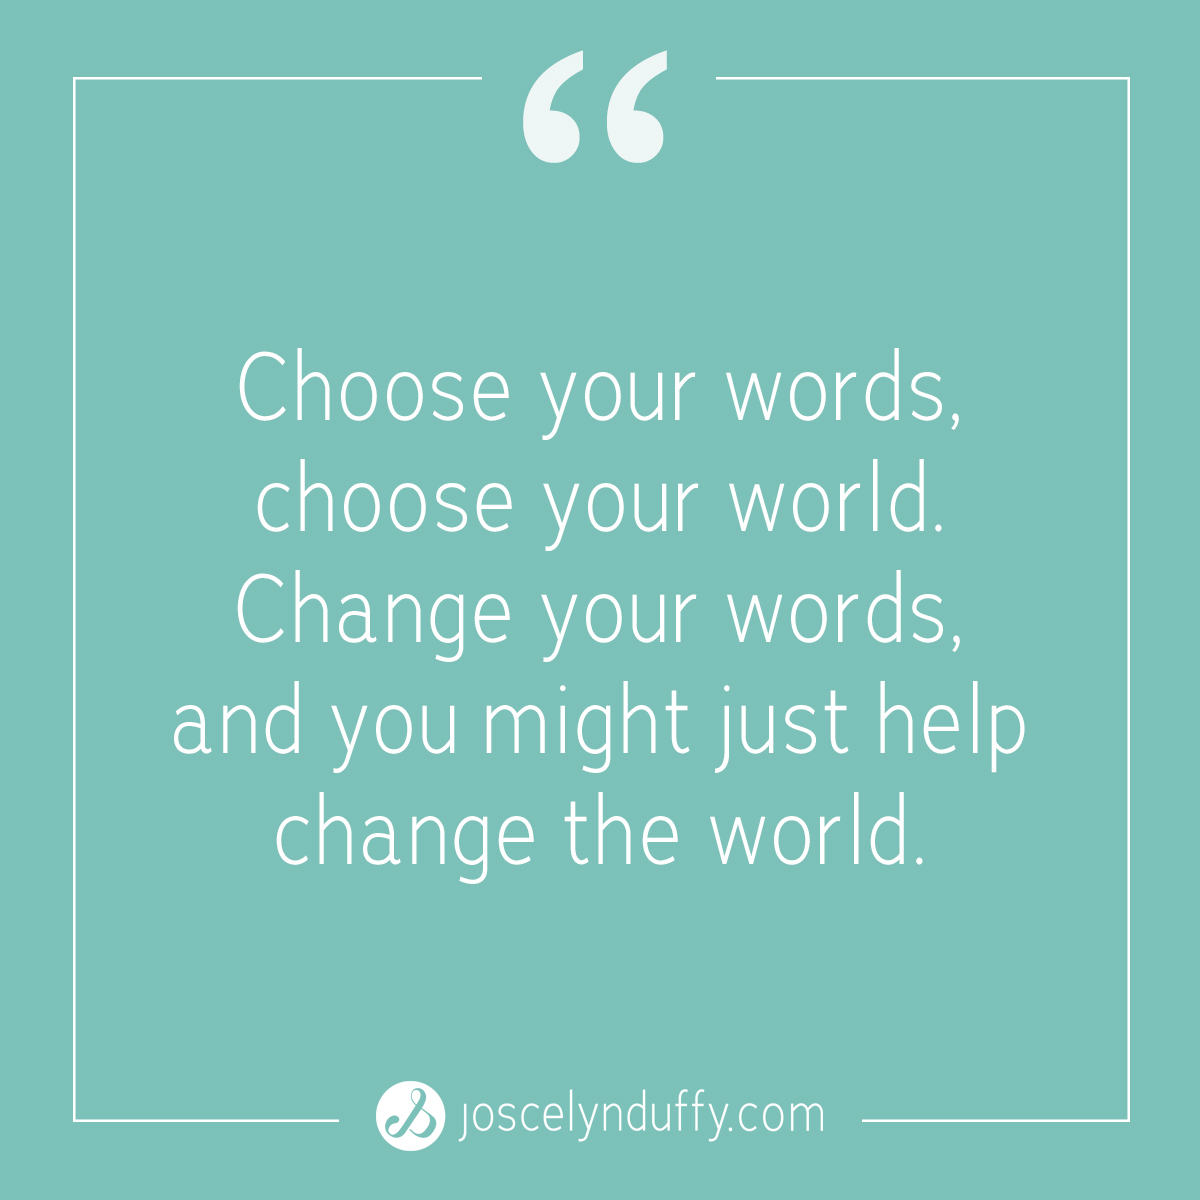 Joscelyn Duffy_quote_Change your words change the world_Feb6